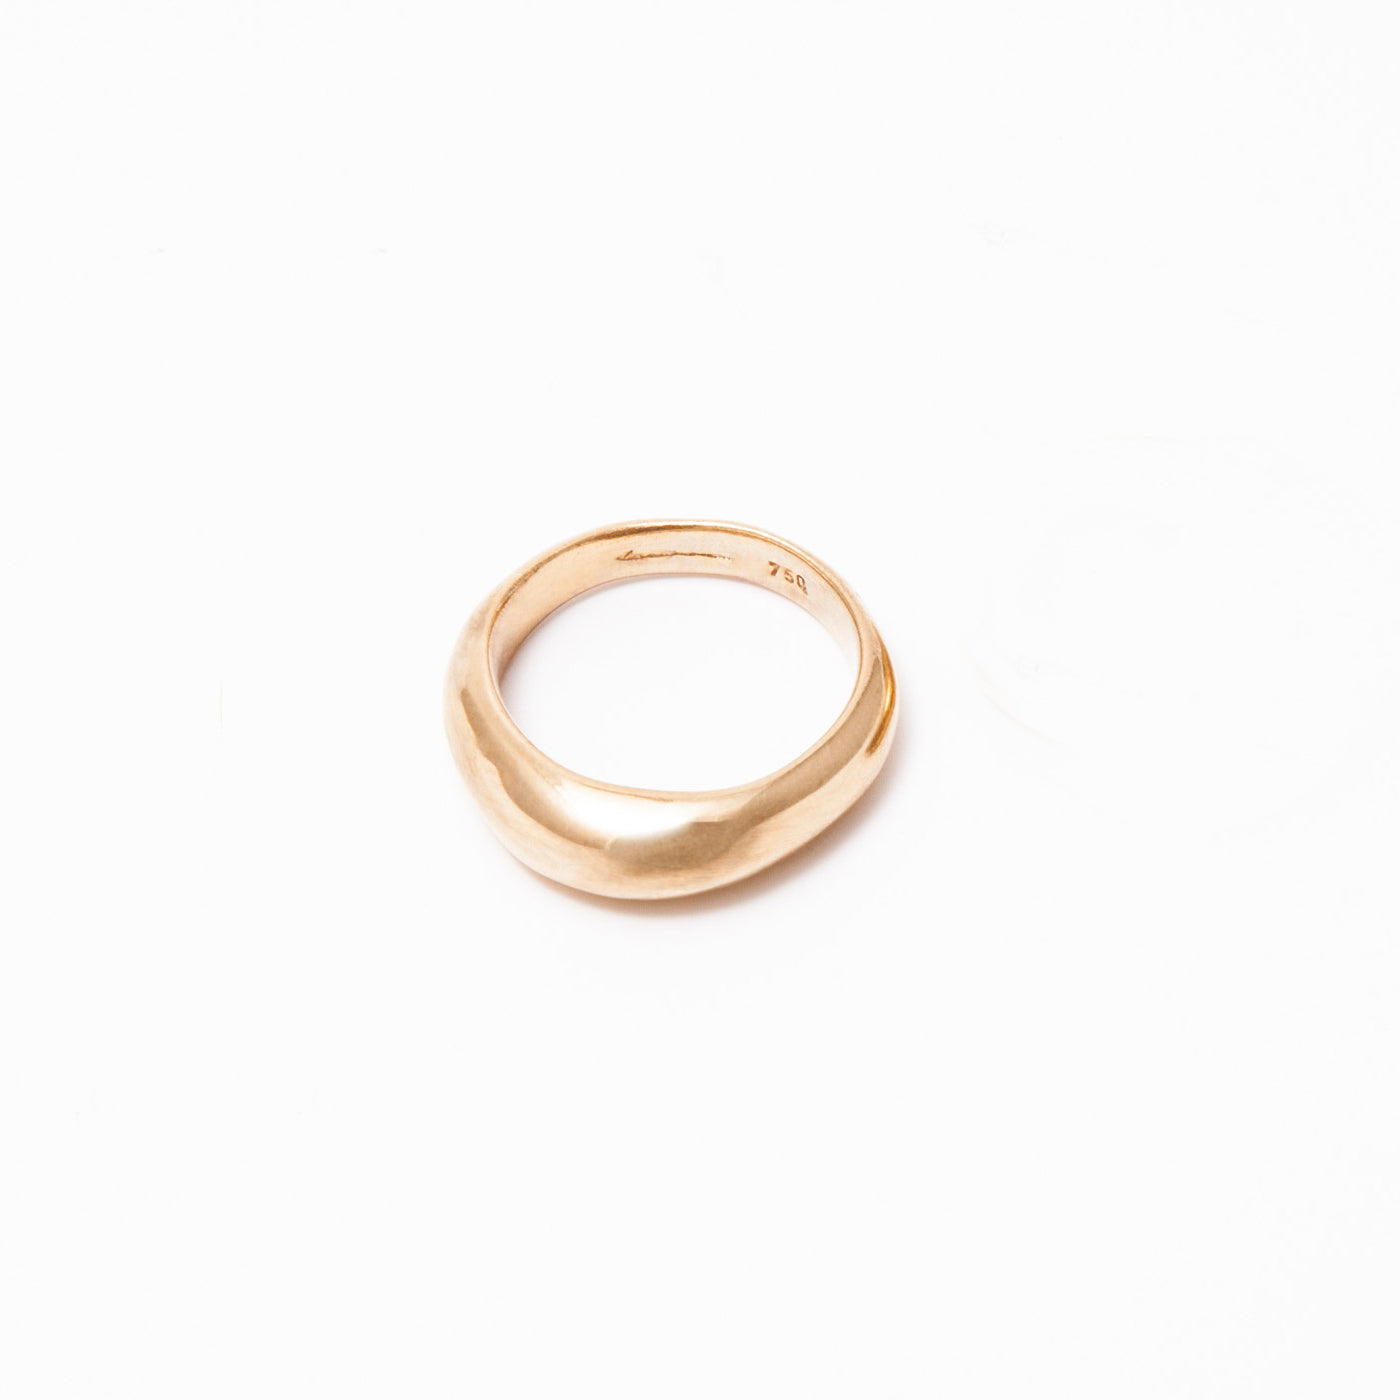 INNAN Jewellery designer Hathor men's wedding ring in 18 ct yellow gold handmade in Berlin